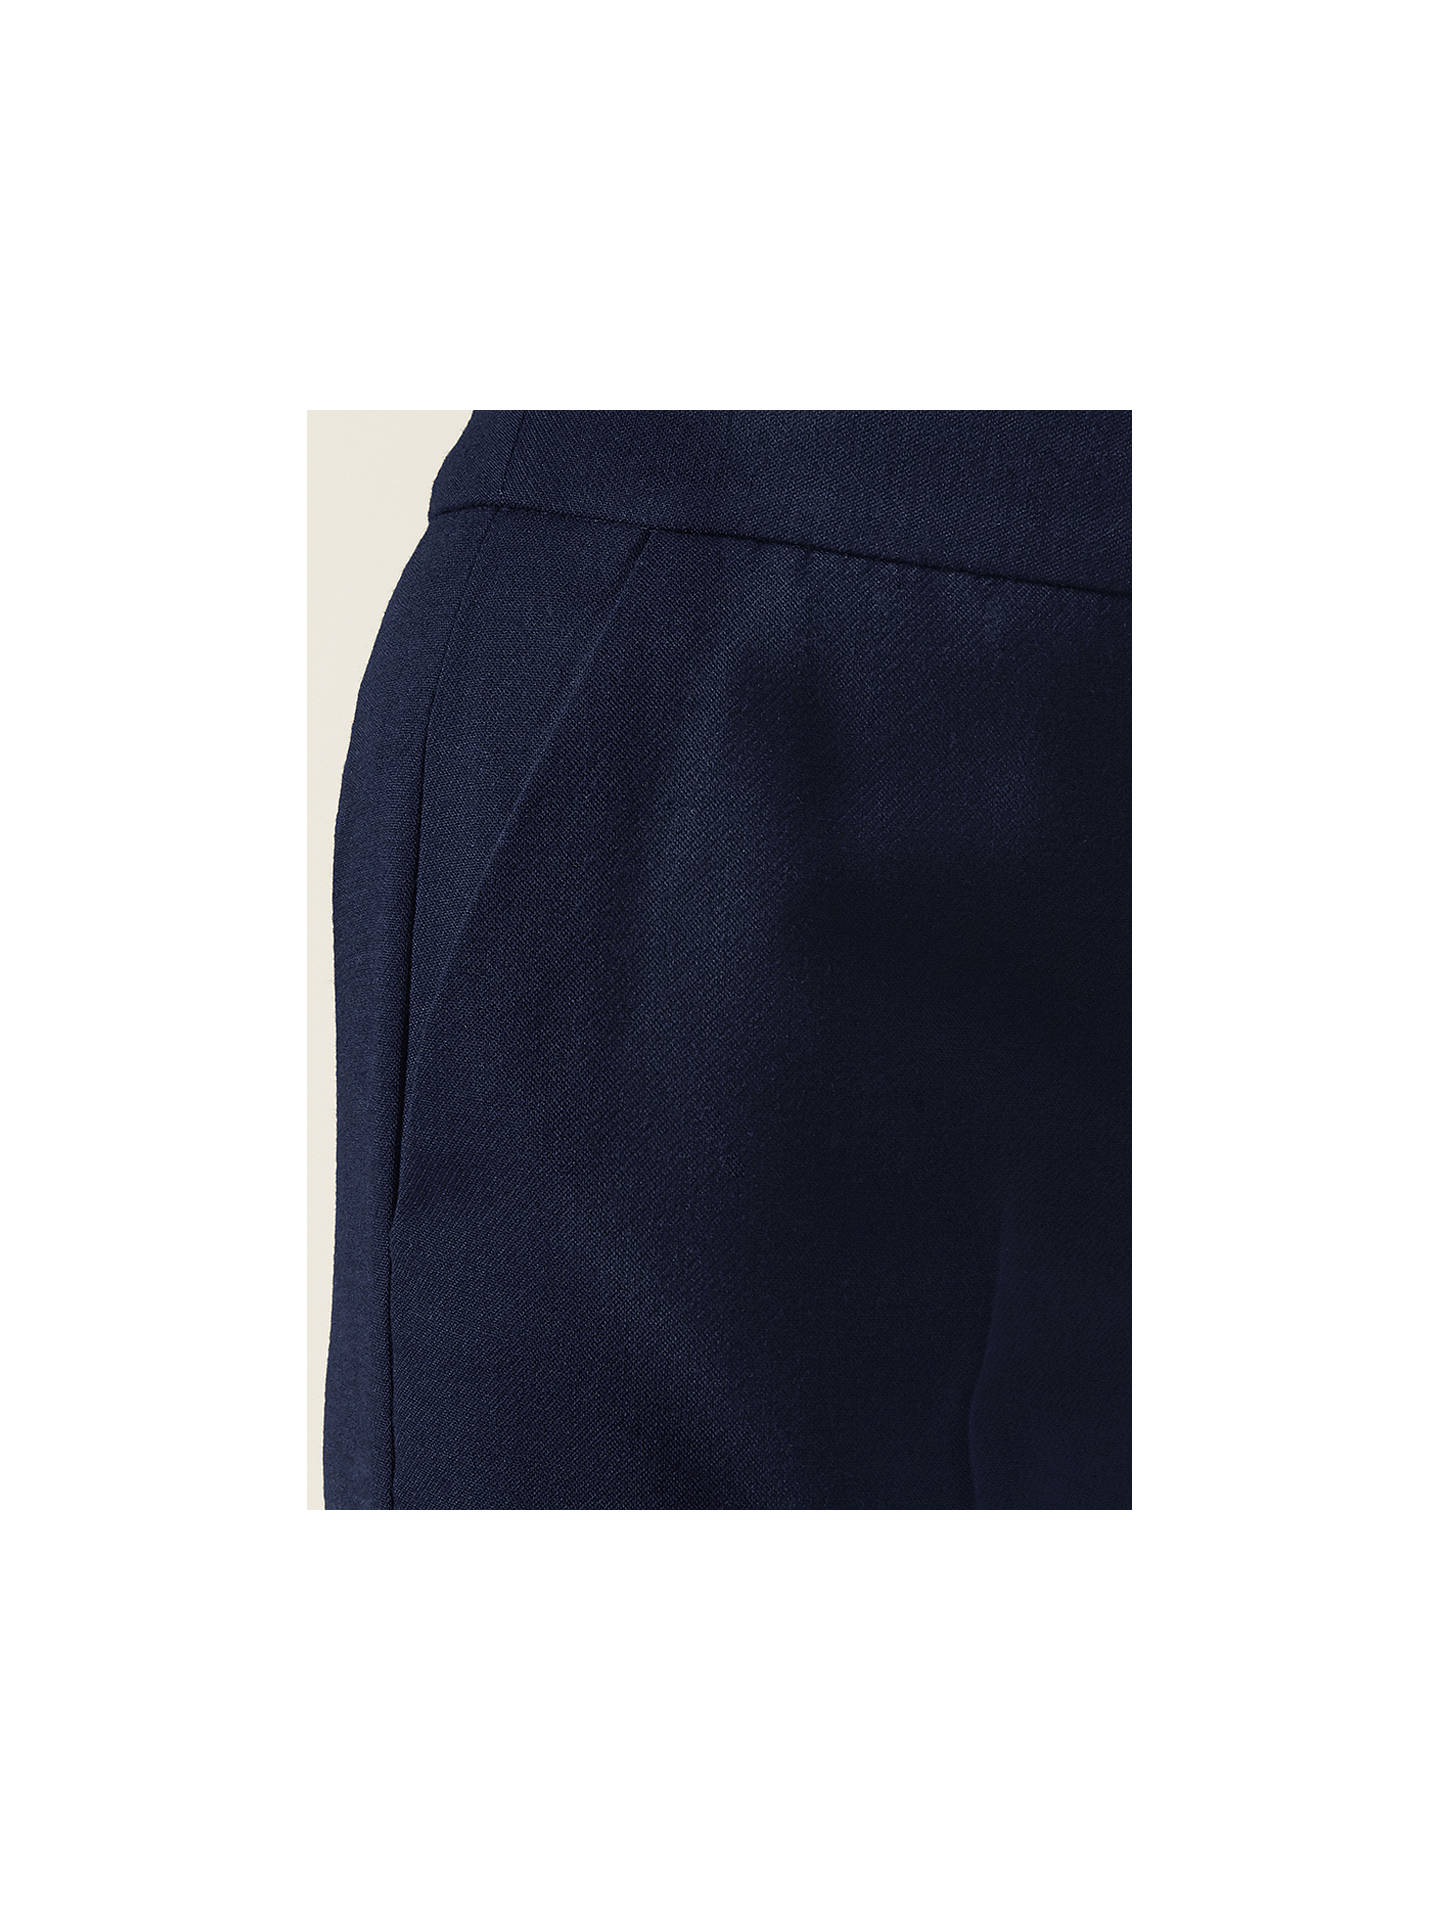 BuyHobbs Winter Gael Tailored Trousers, Navy, 6 Online at johnlewis.com